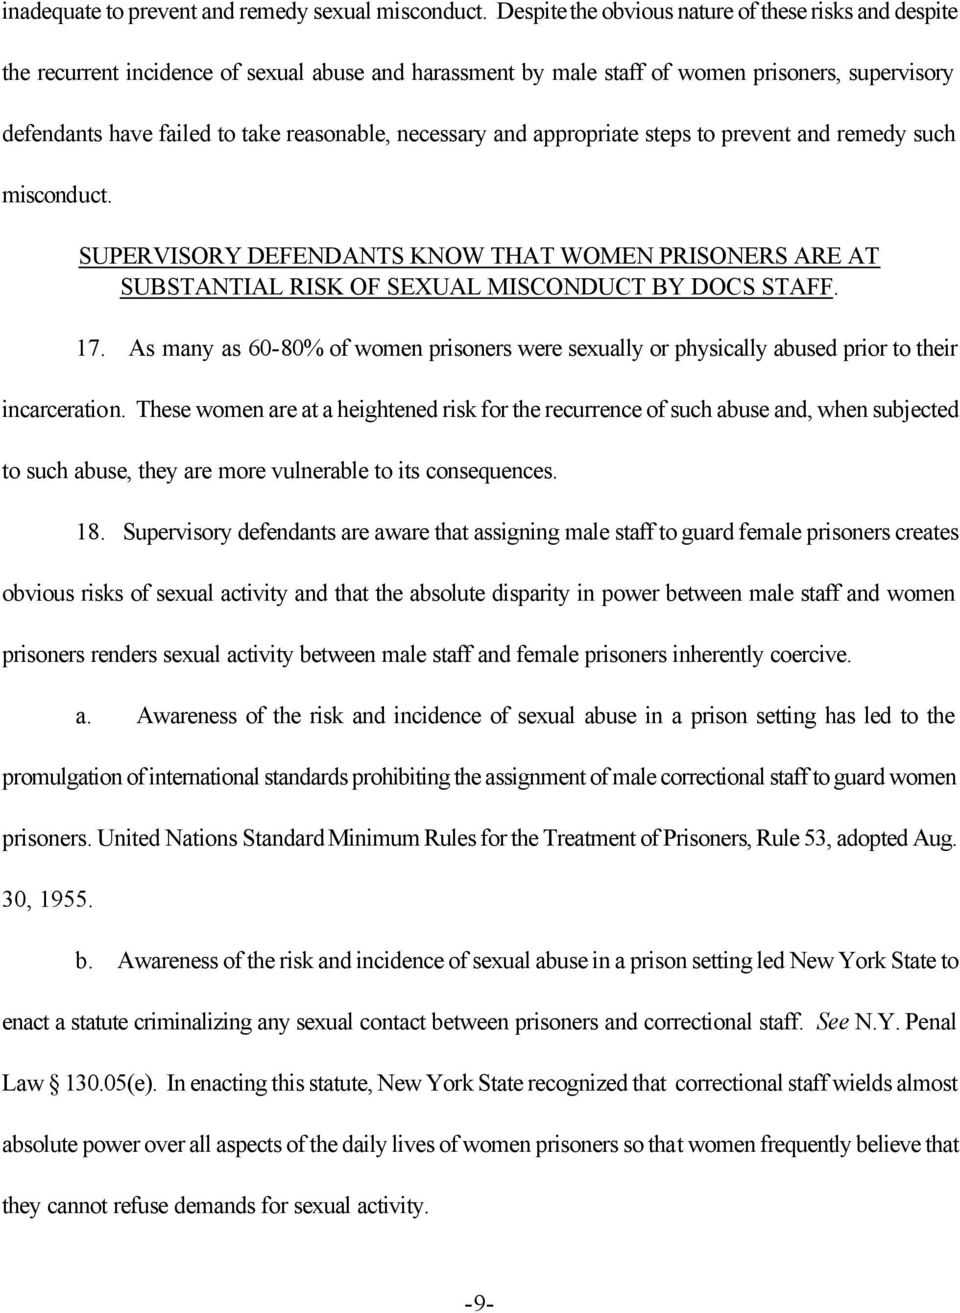 necessary and appropriate steps to prevent and remedy such misconduct. SUPERVISORY DEFENDANTS KNOW THAT WOMEN PRISONERS ARE AT SUBSTANTIAL RISK OF SEXUAL MISCONDUCT BY DOCS STAFF. 17.